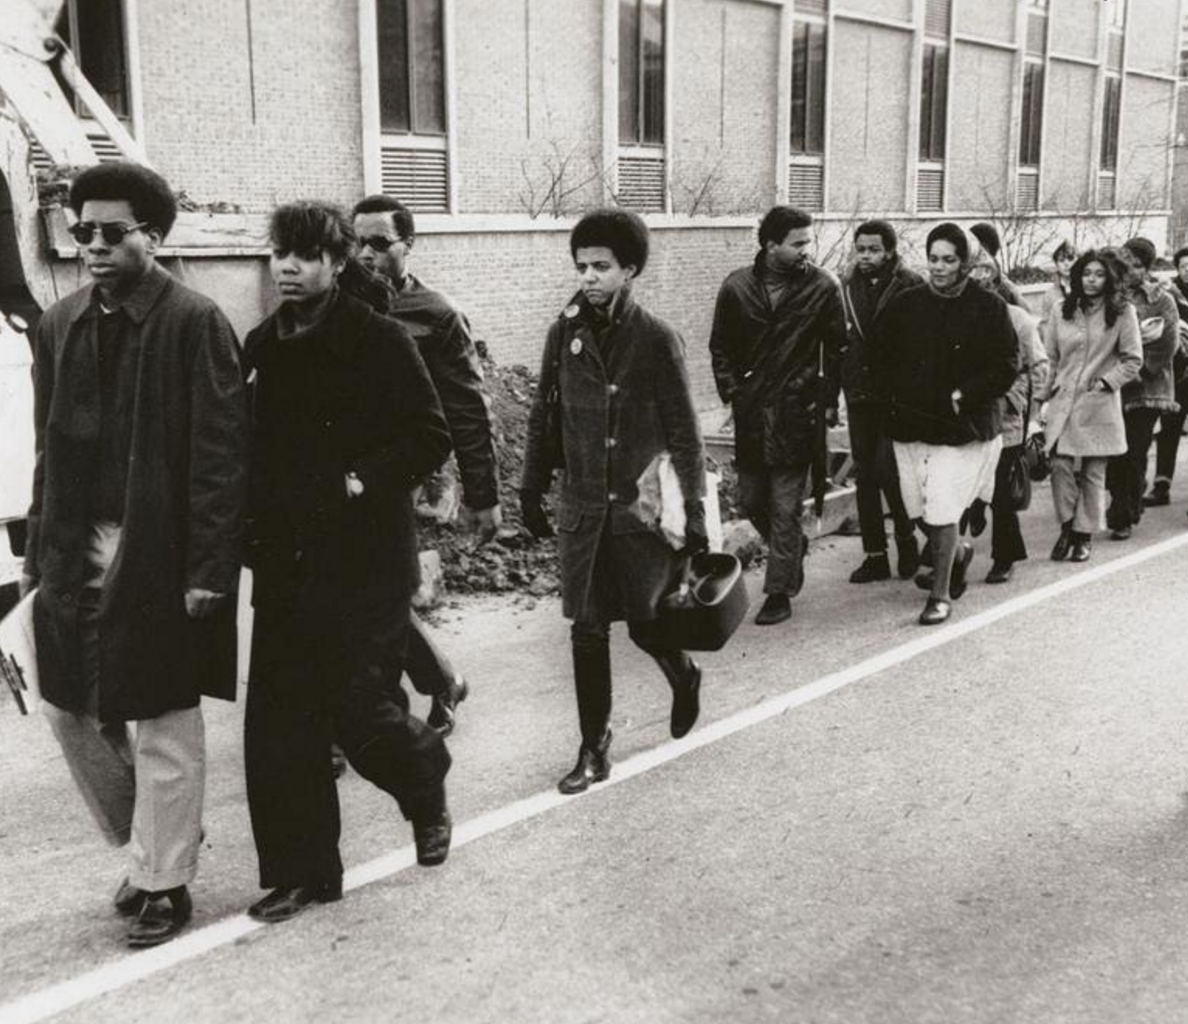 Student protests at Brown University in 1968.